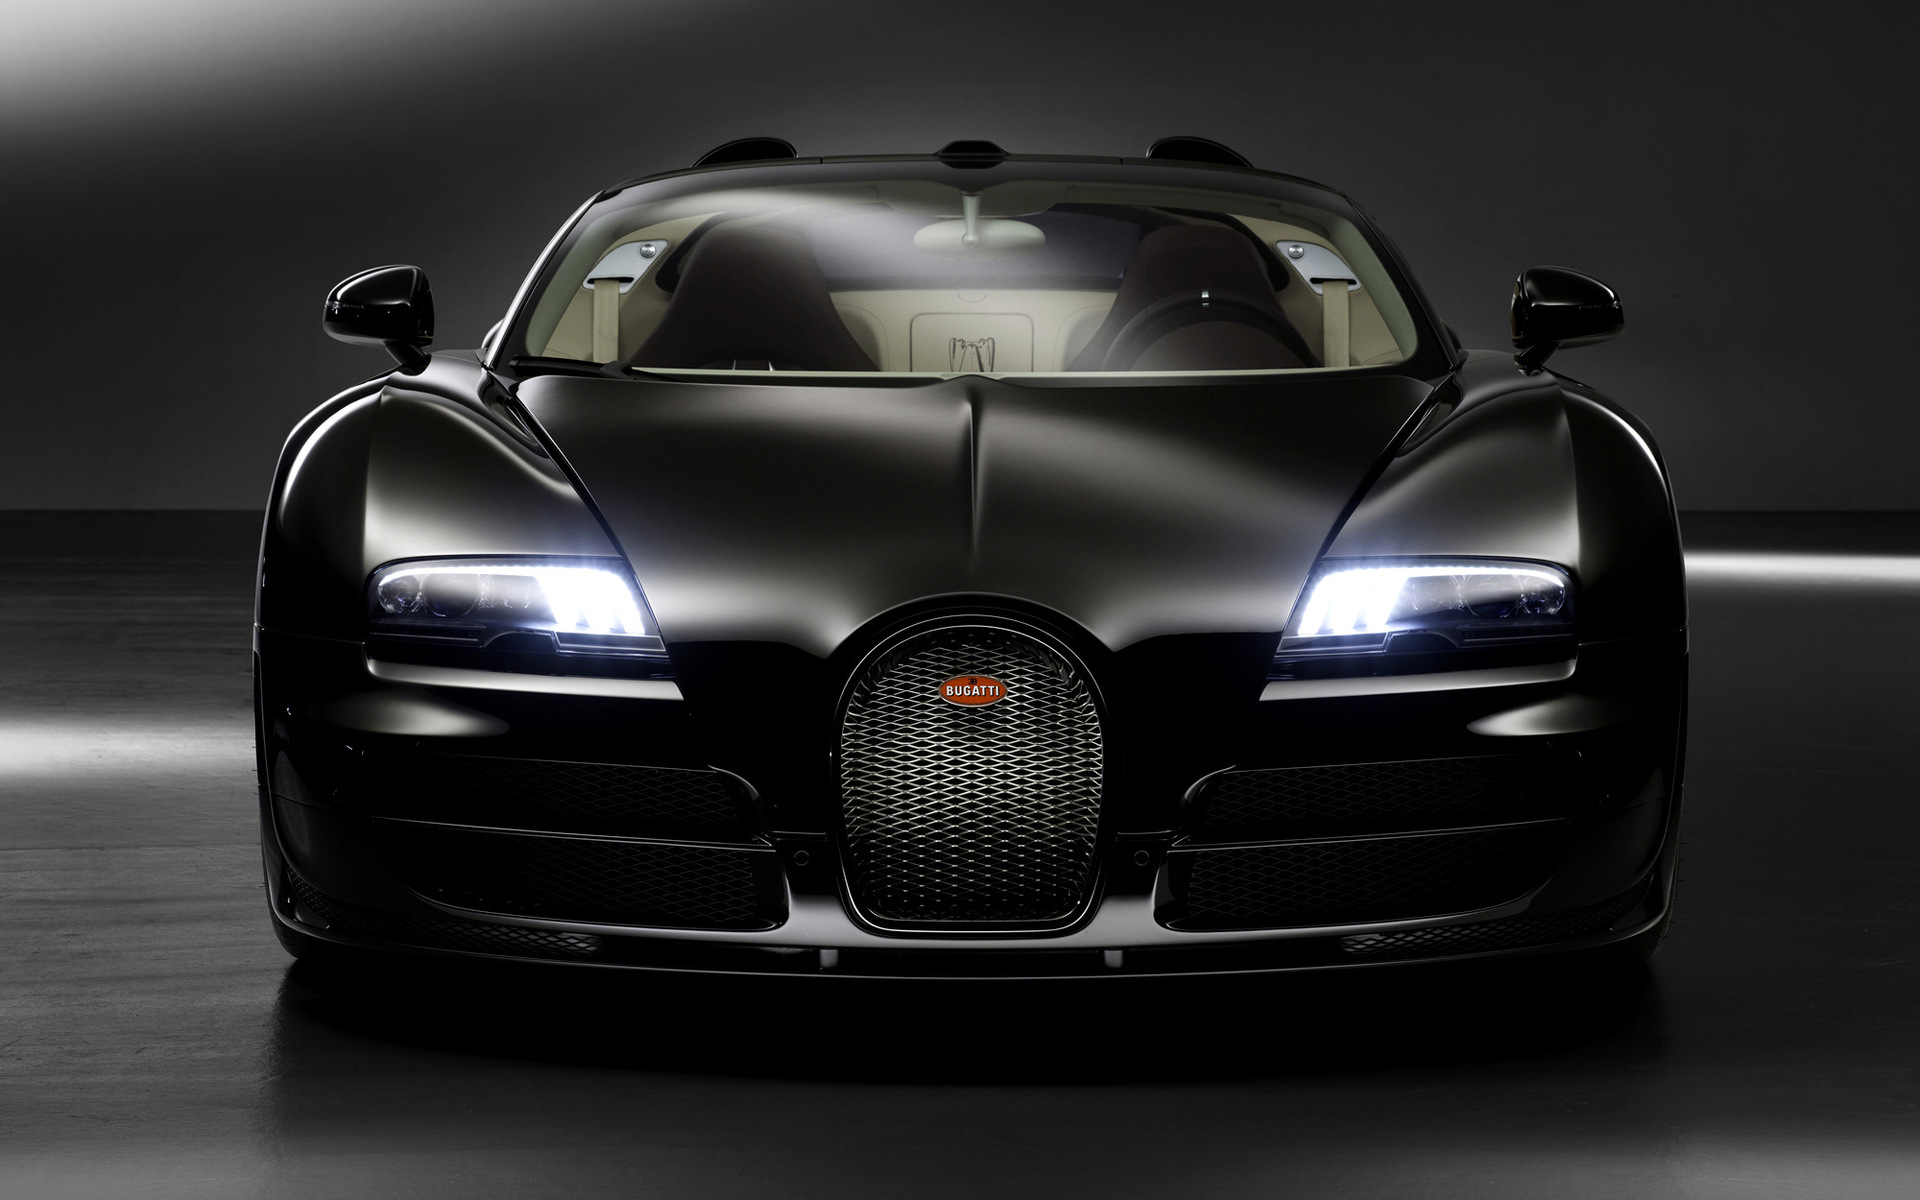 bugatti veyron grand sport vitesse jean bugatti (2013) wallpapers